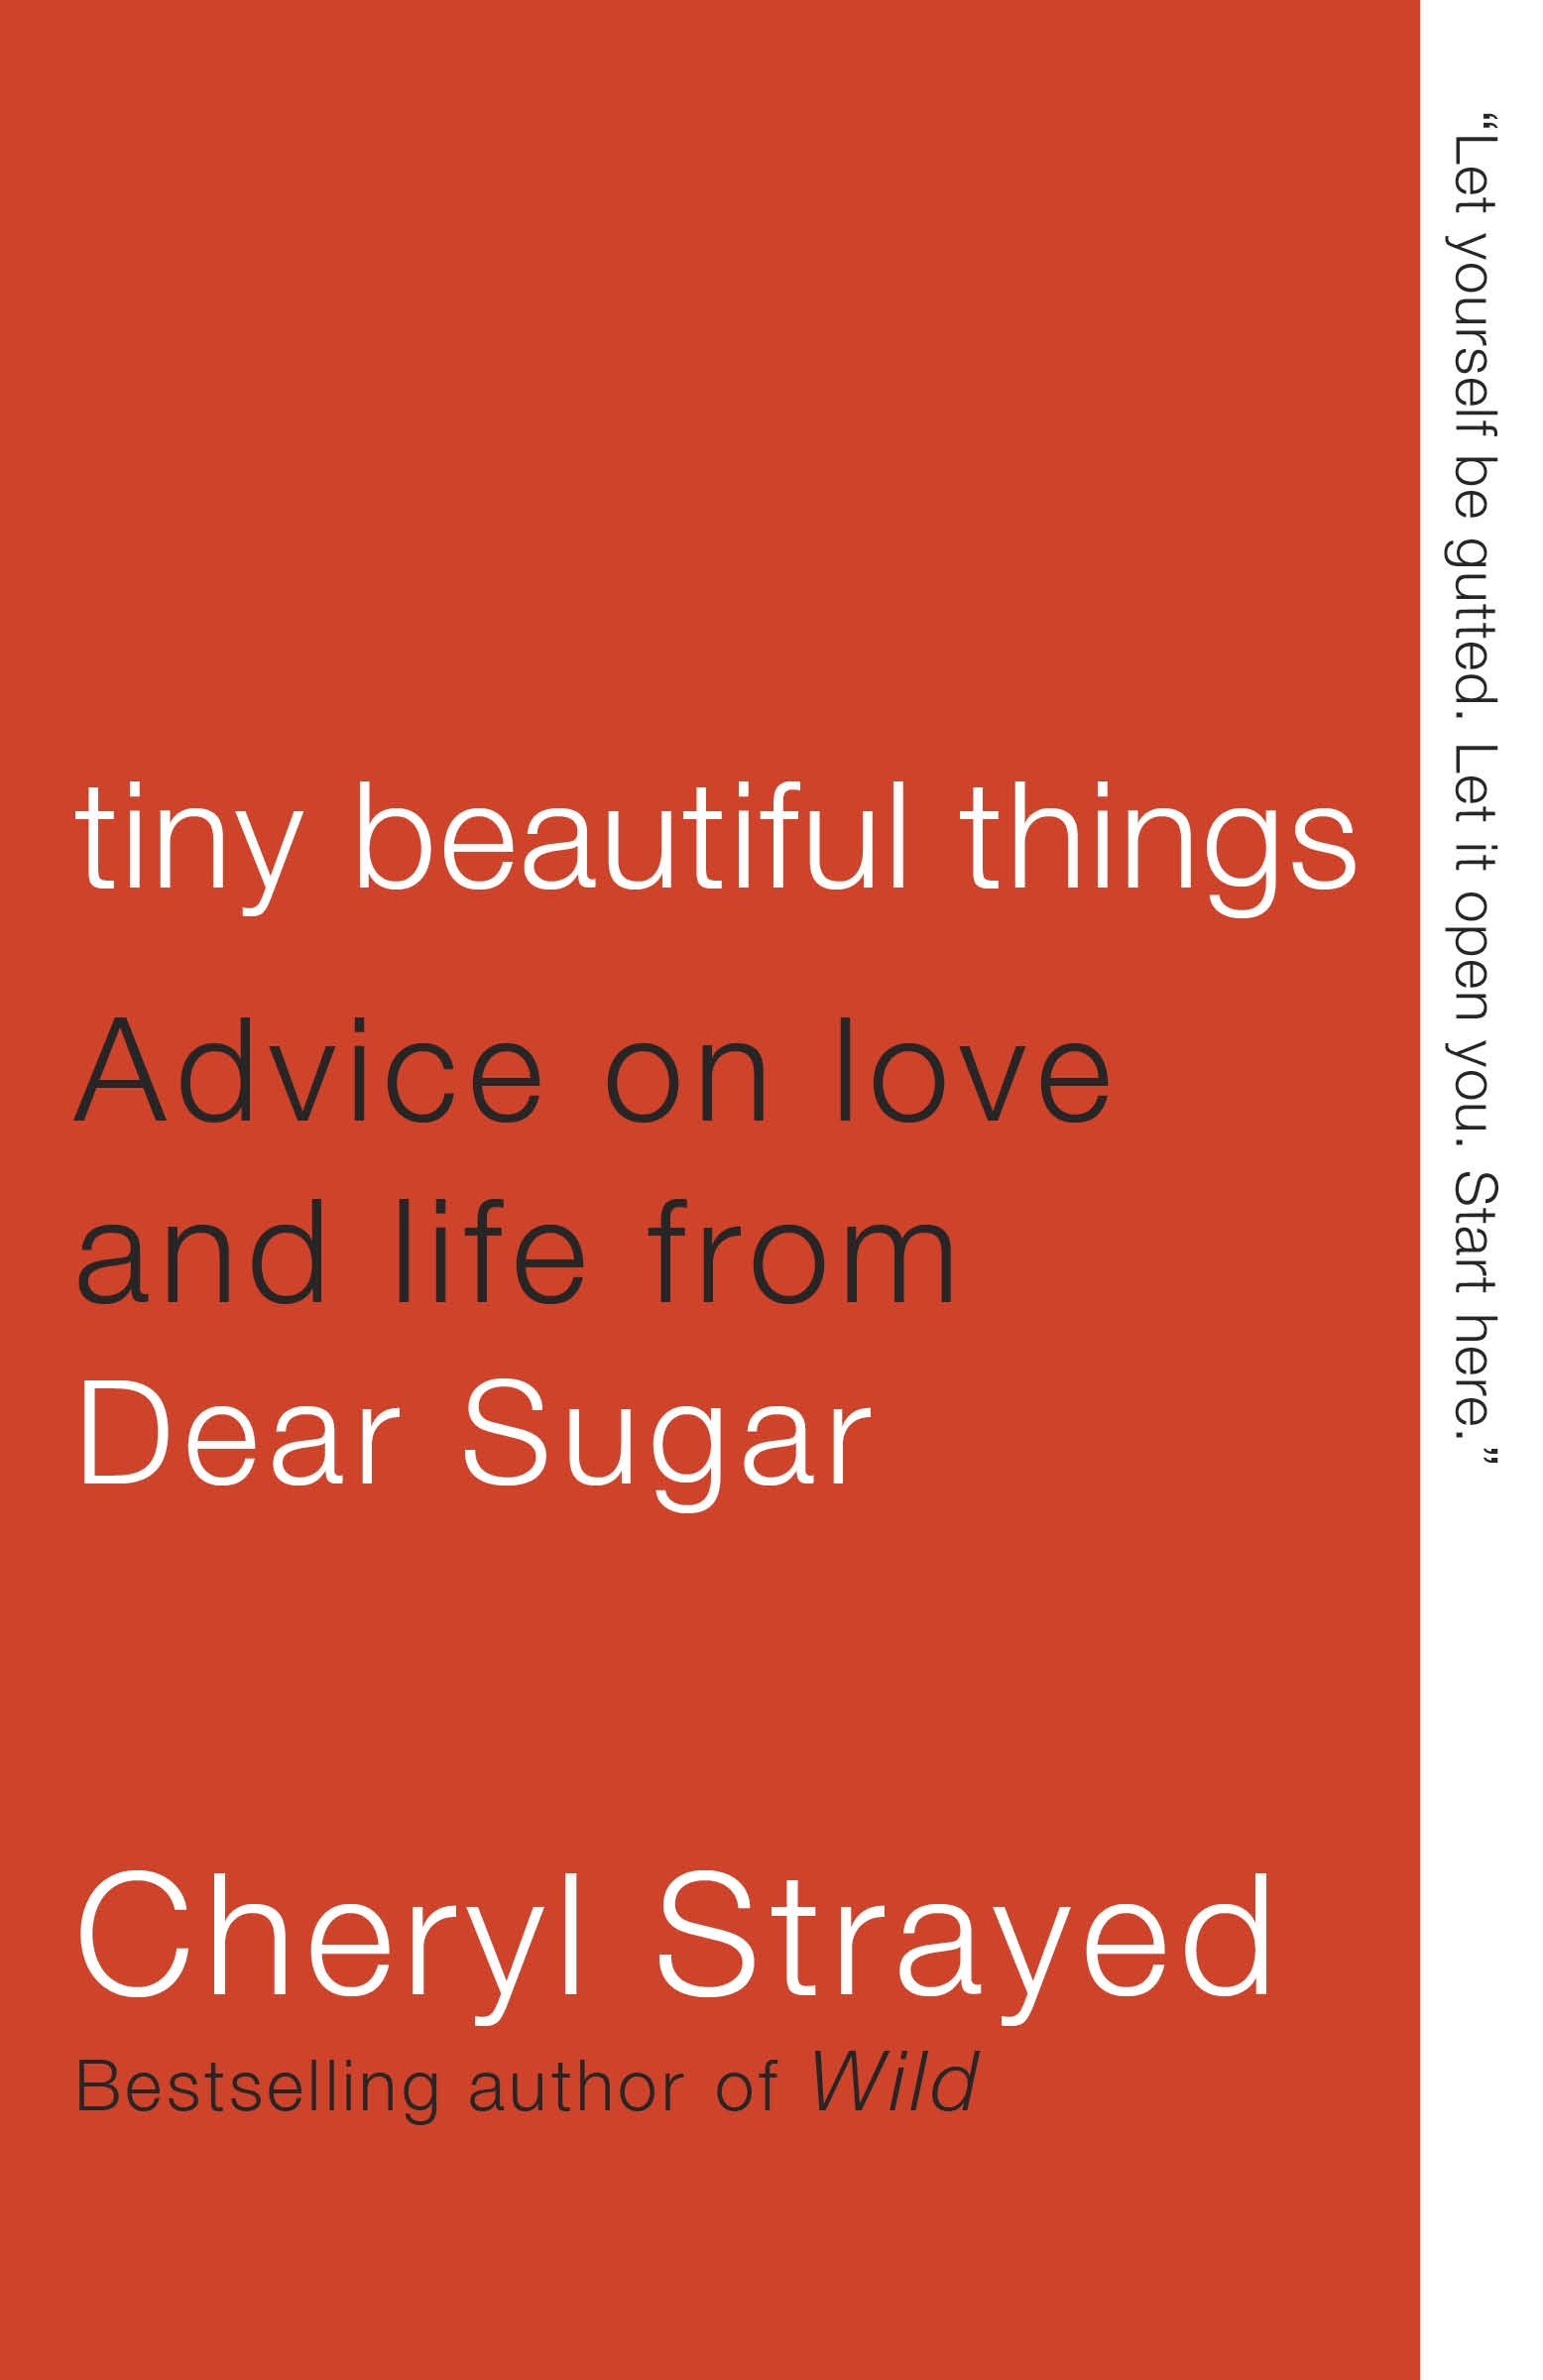 Tiny Beautiful Things1 Q&A: Cheryl Strayed, Author of Tiny Beautiful Things